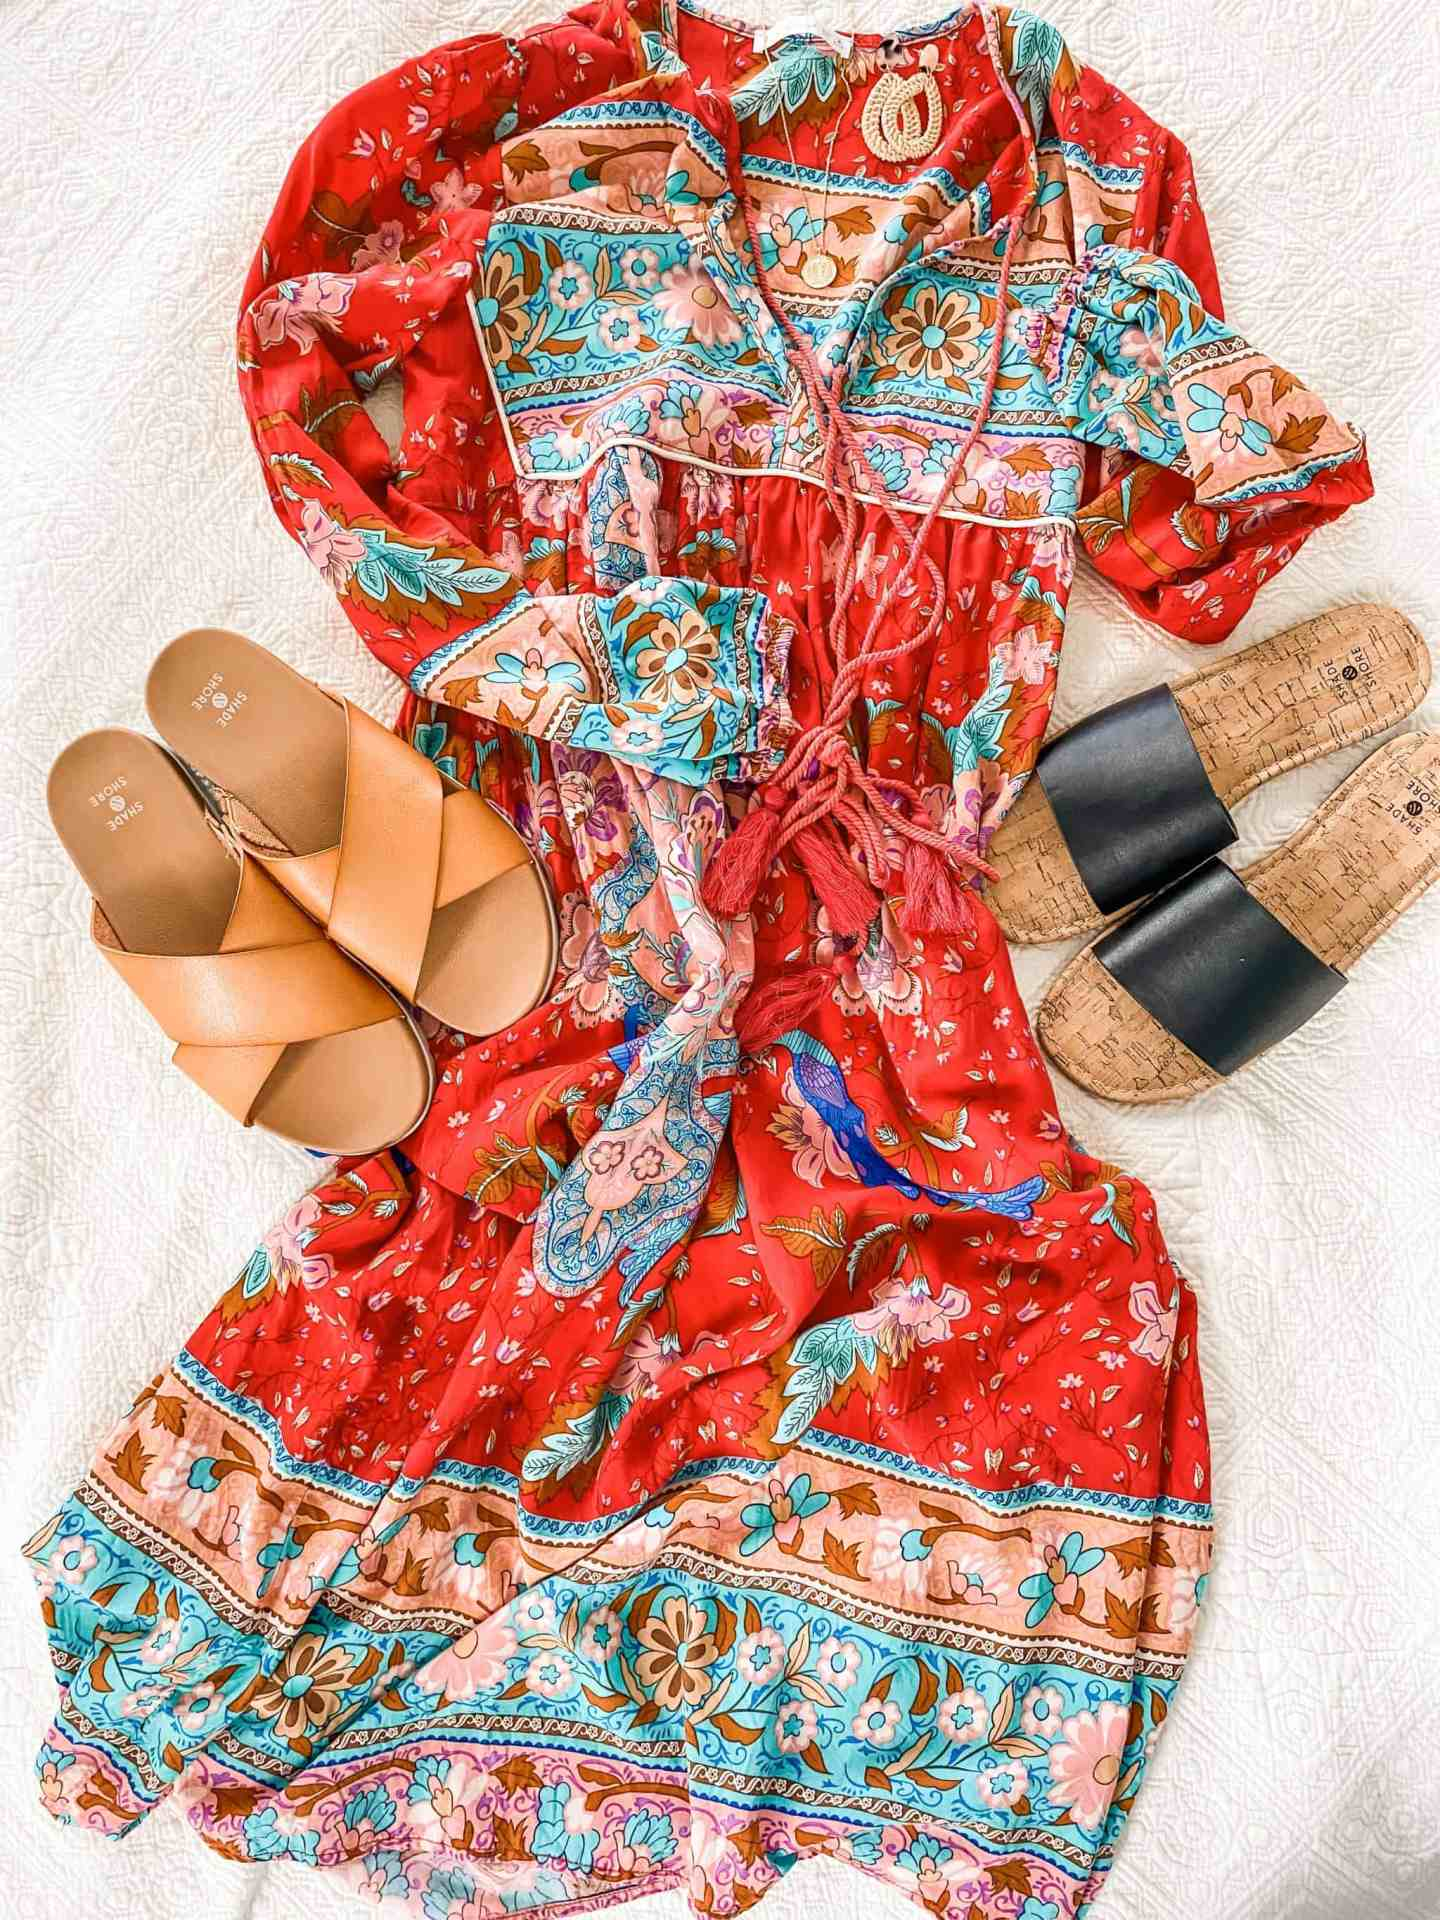 spring-break-dress-outfit